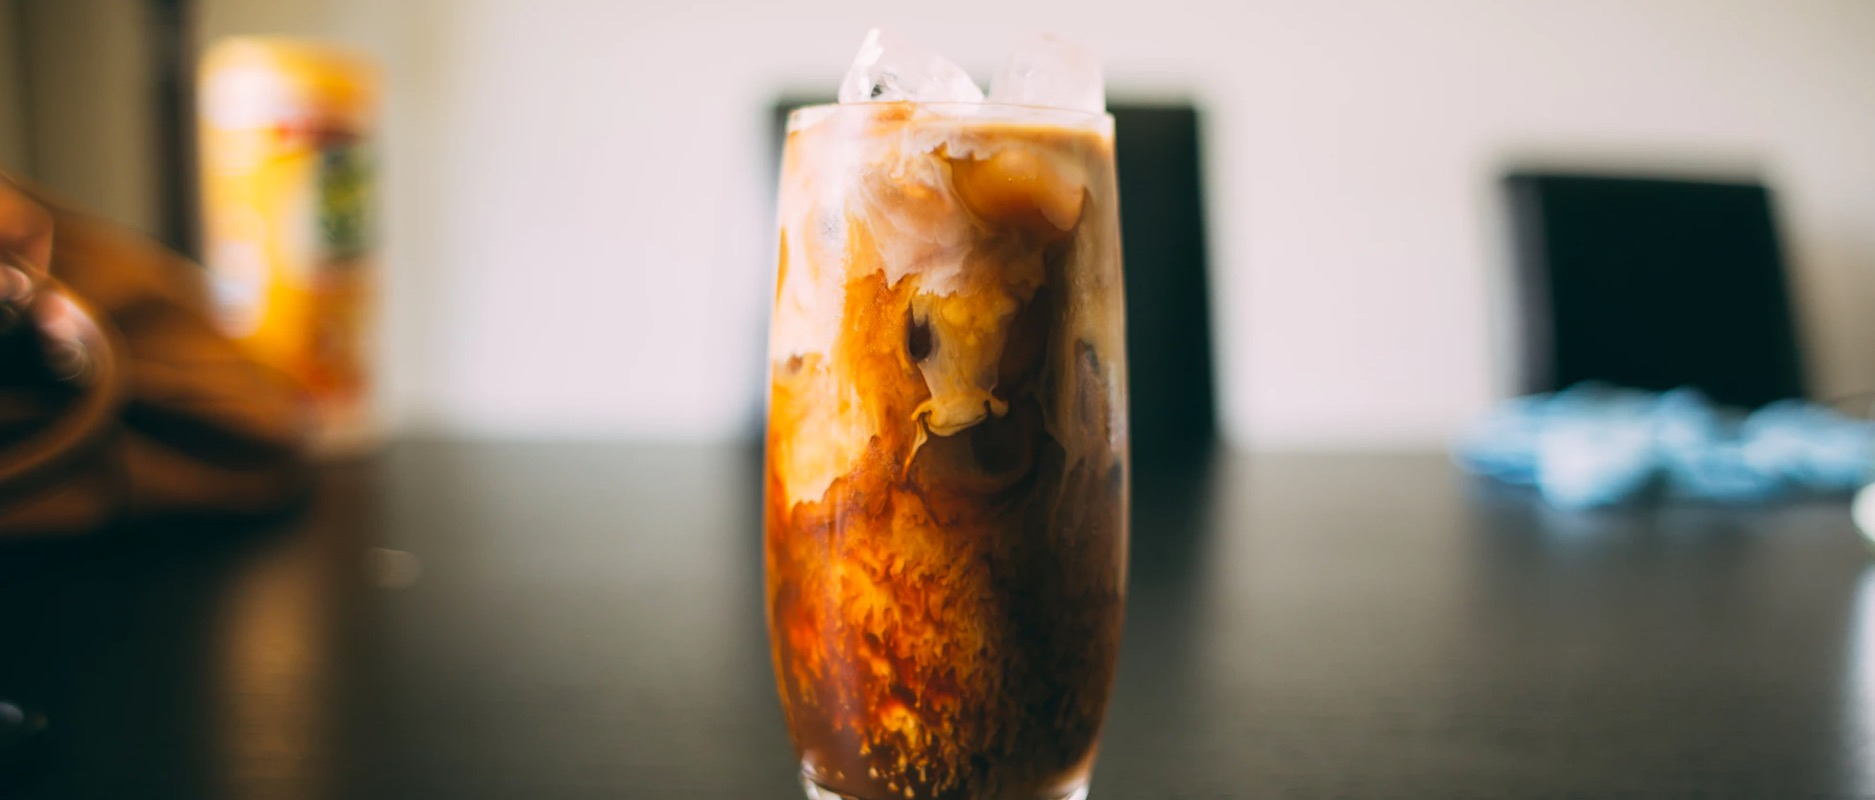 Cold Brew coffee in a glass with milk